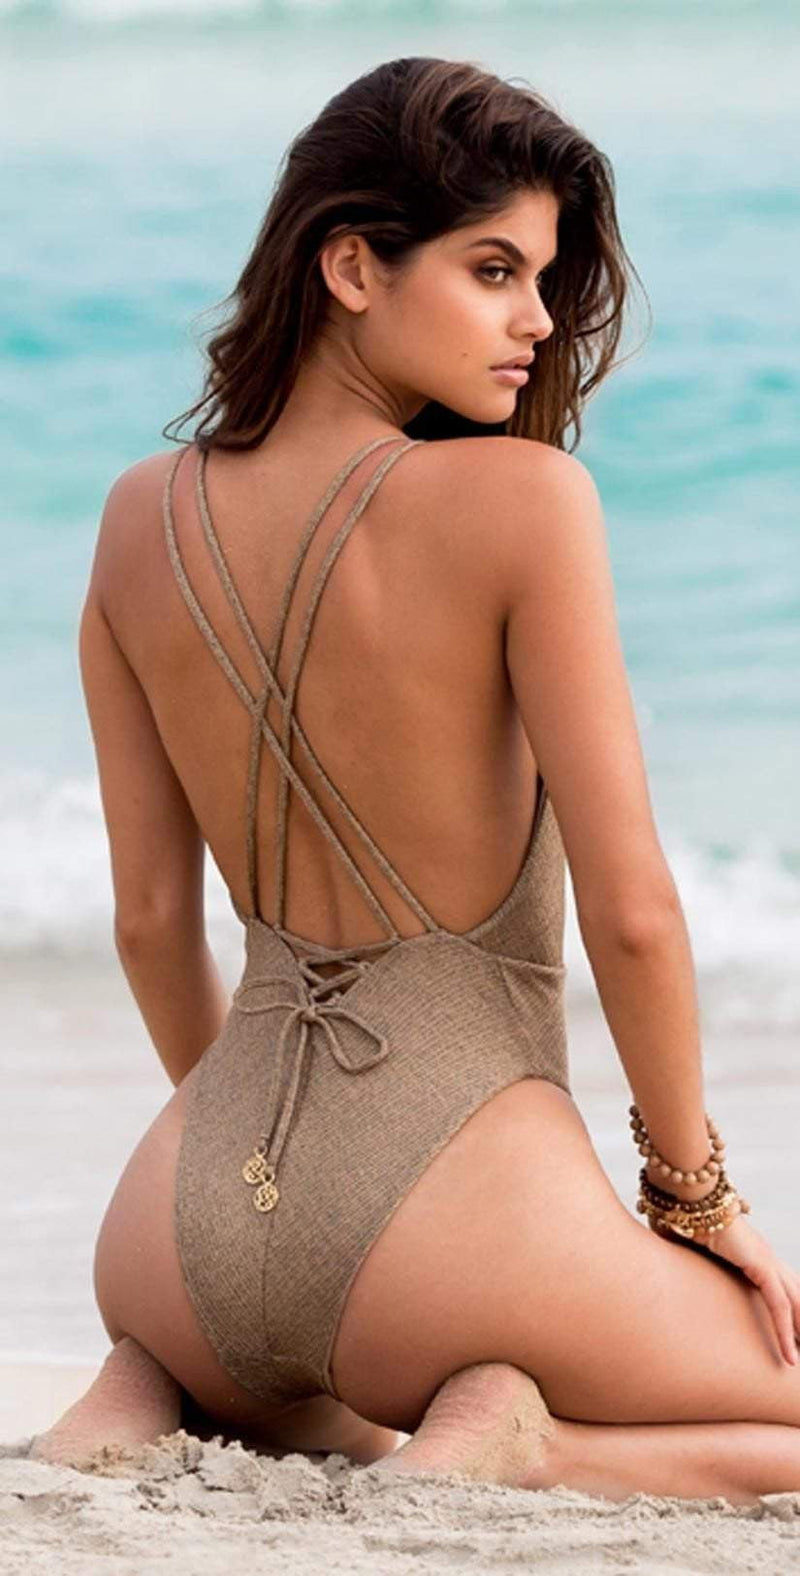 Luli Fama Compai One Piece in Bronze Swimsuit L556M60-BRNZ: